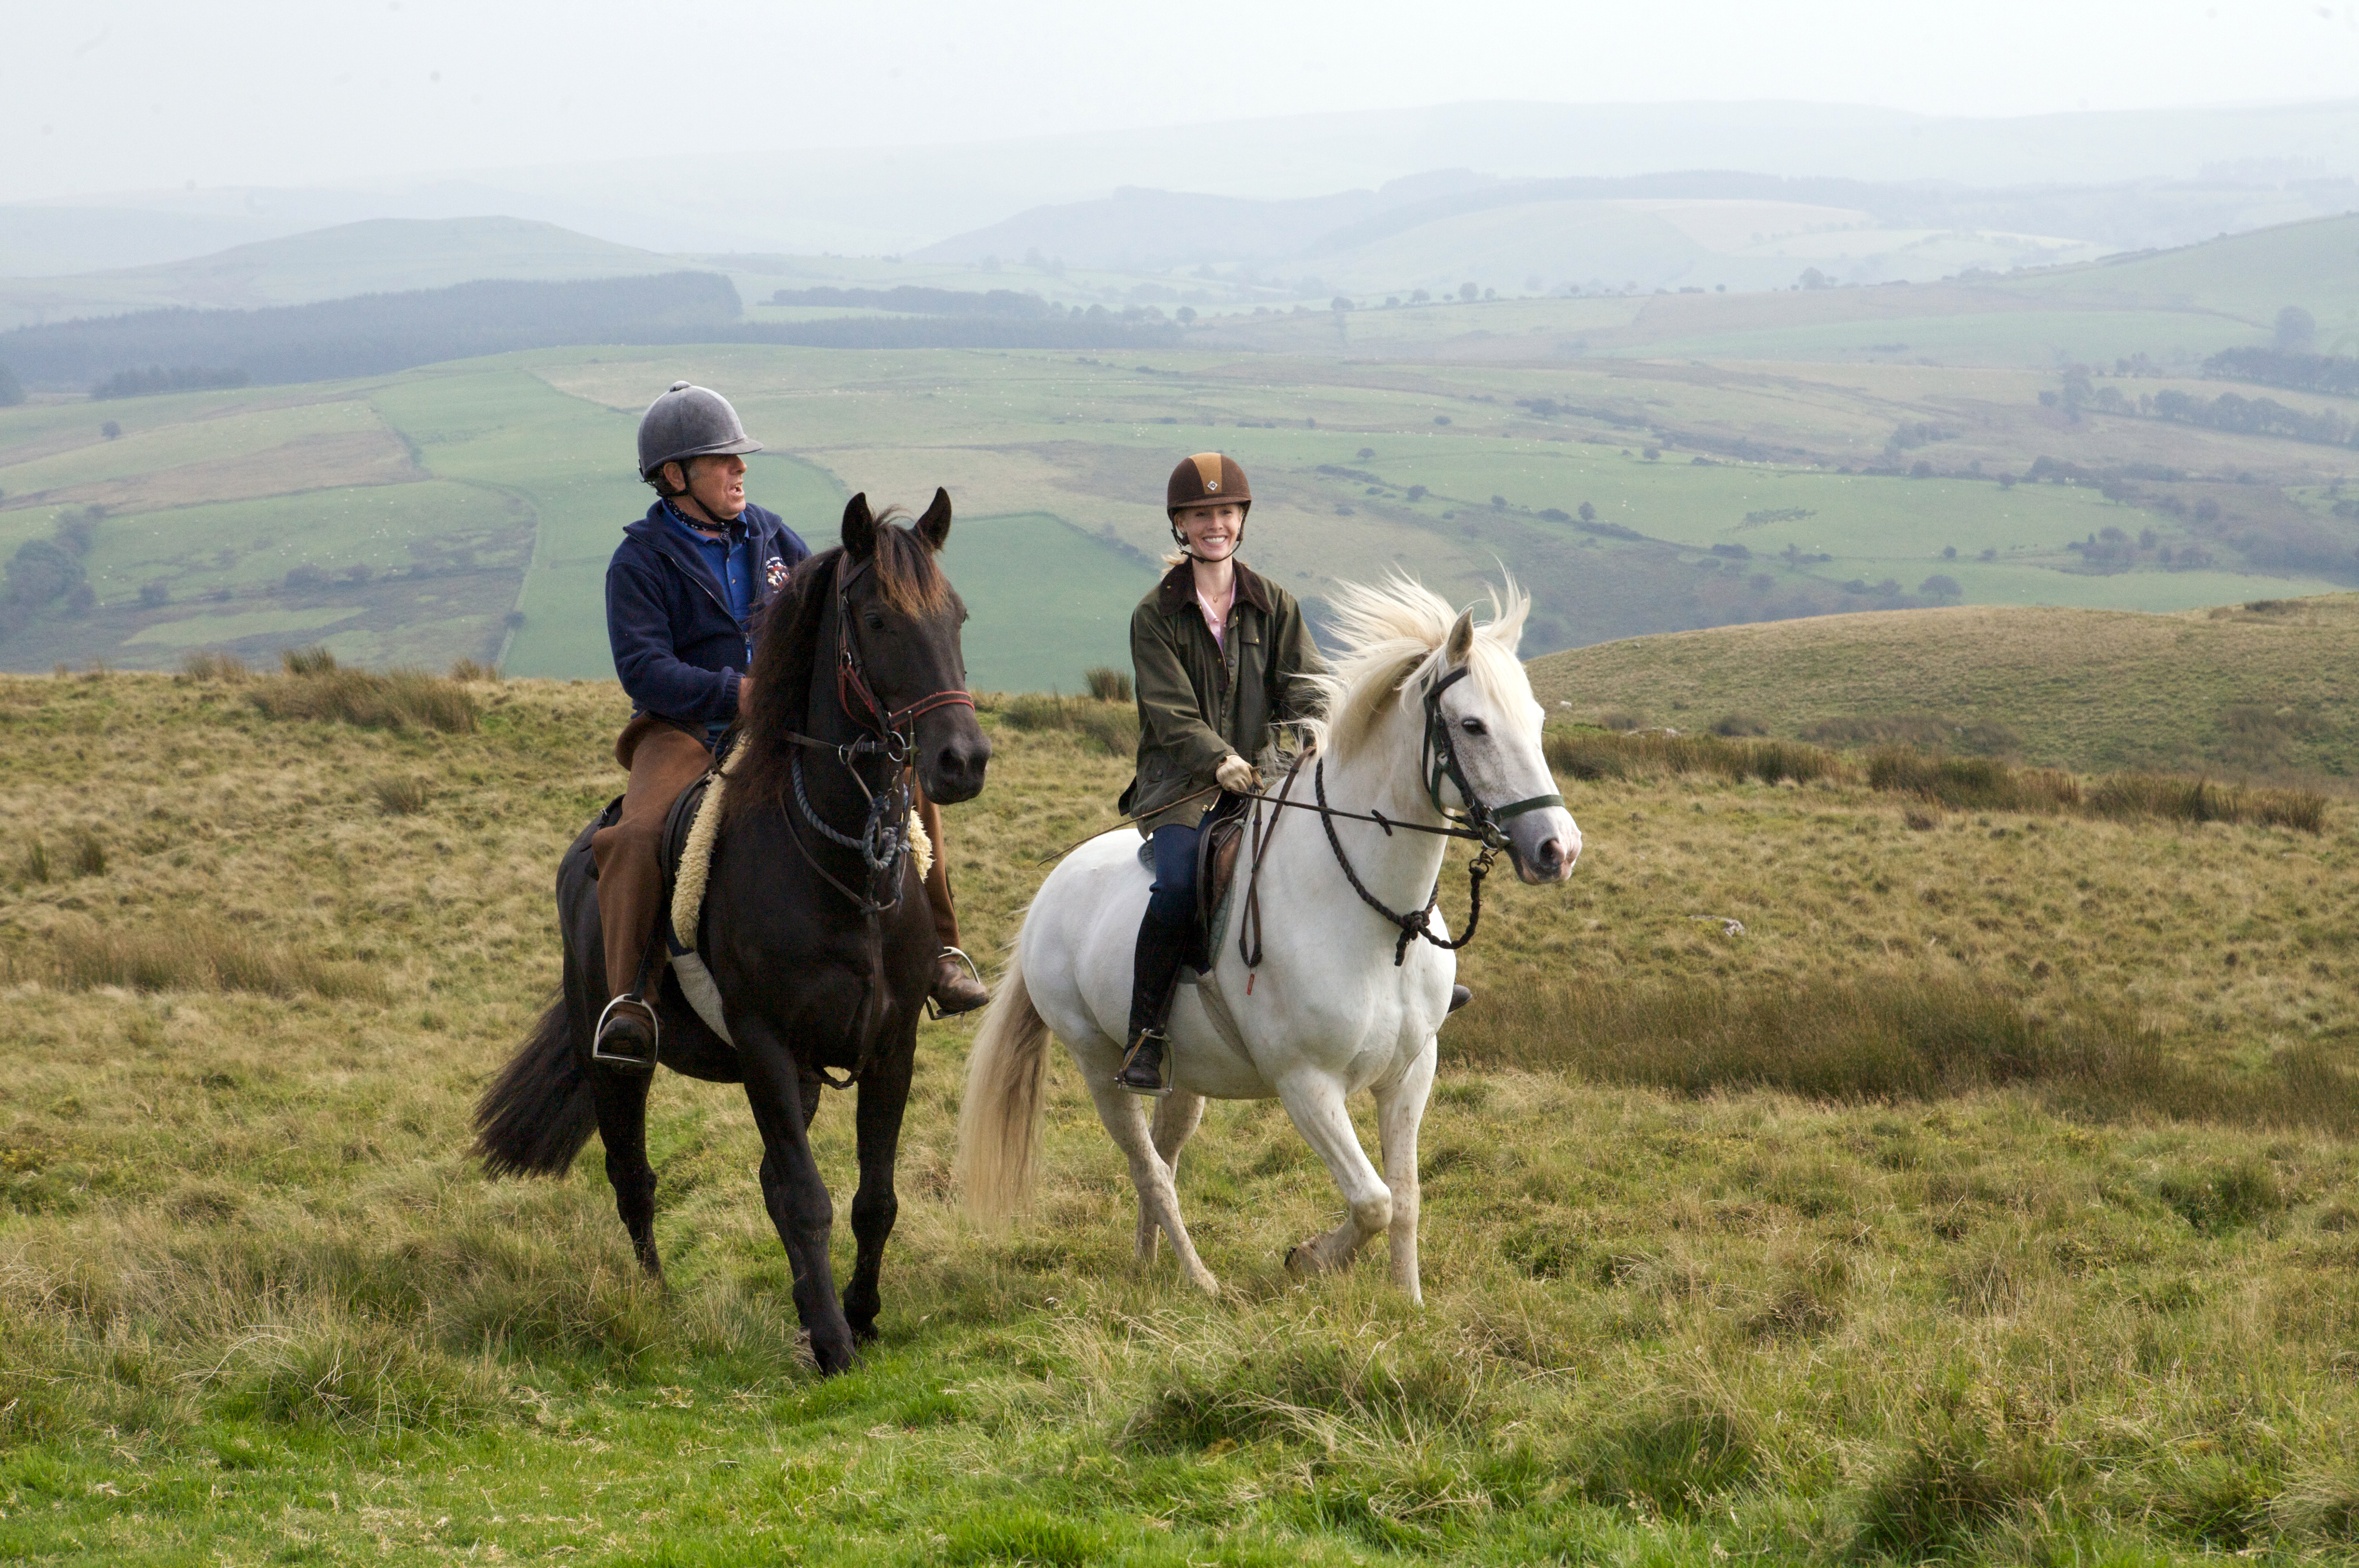 Charlie Pollak and Darley Newman ride the Cambrian Mountains in West Wales. Darley rode on a beautiful Welsh Cob named Seren during the filming of Equitrekking Wales.